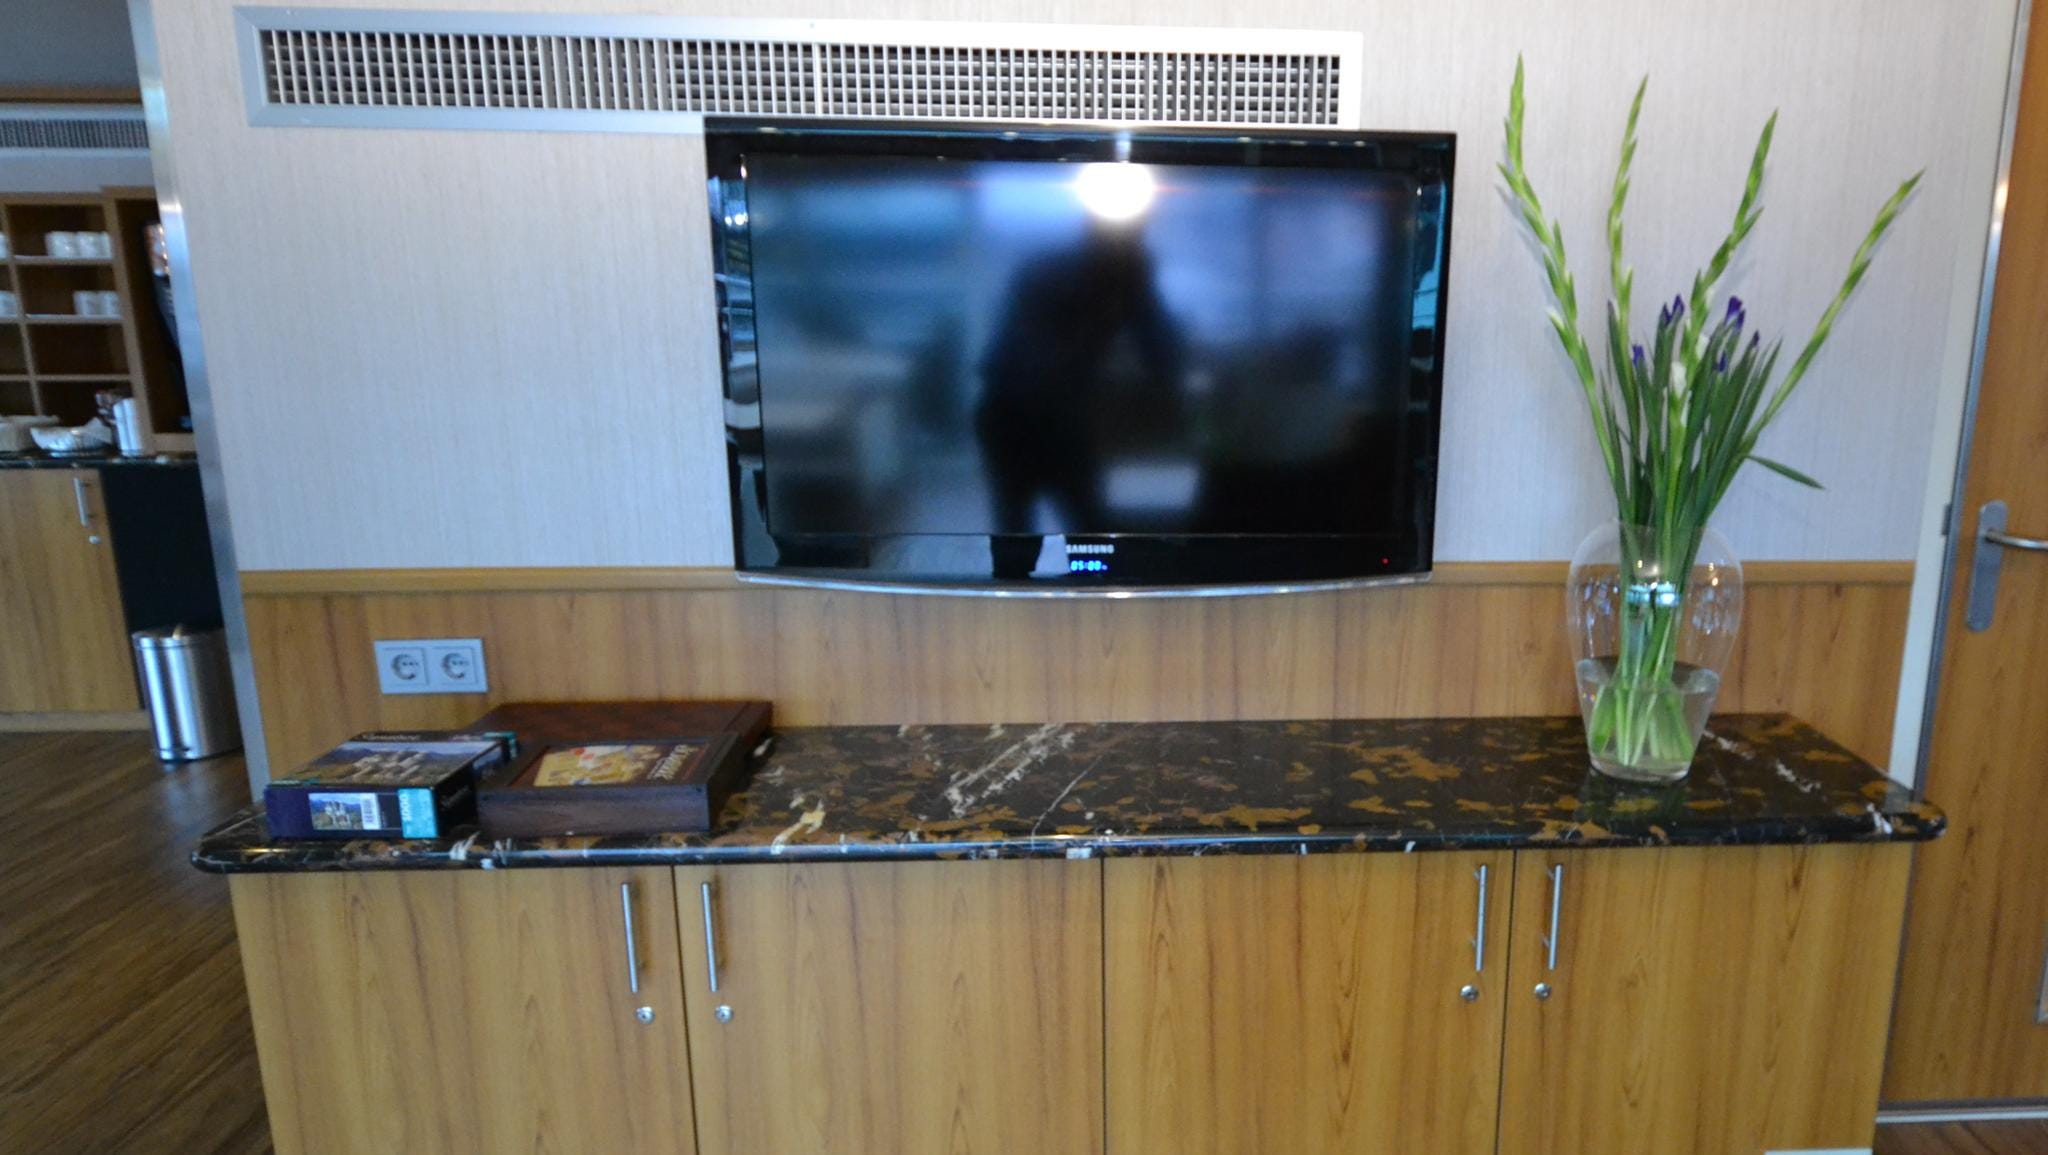 The Captain's Club also has a large flat-screen television.